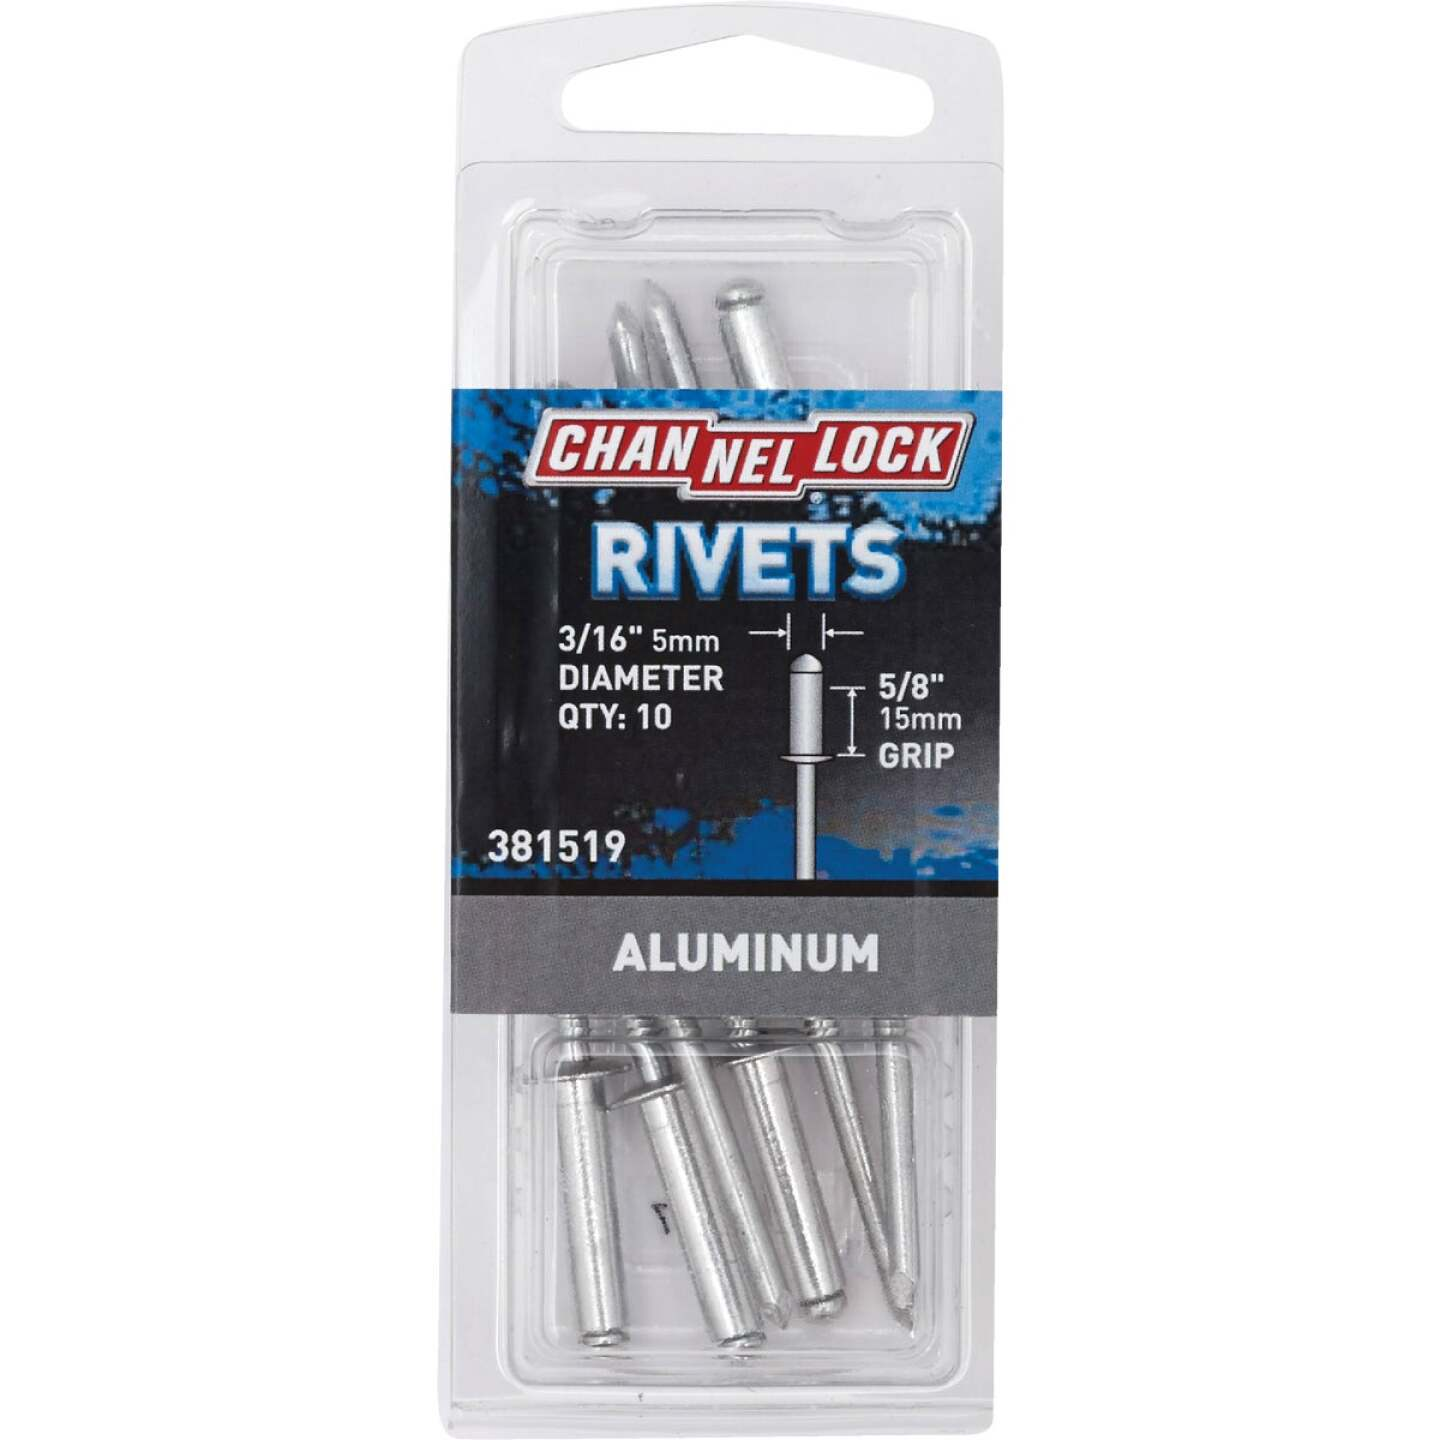 Channellock 3/16 In. Dia. x 5/8 In. Grip Aluminum POP Rivet (10-Pack) Image 1